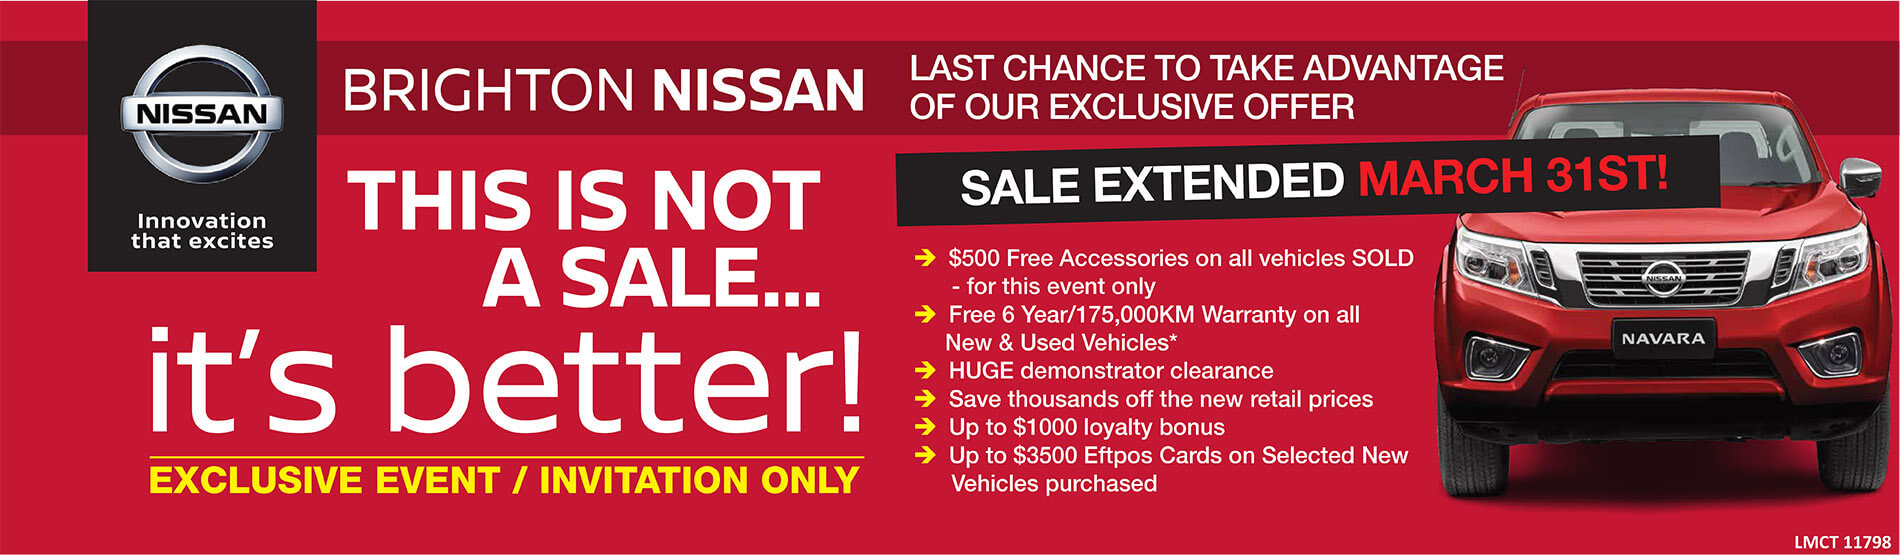 Brighton Nissan - This Is Not A Sale